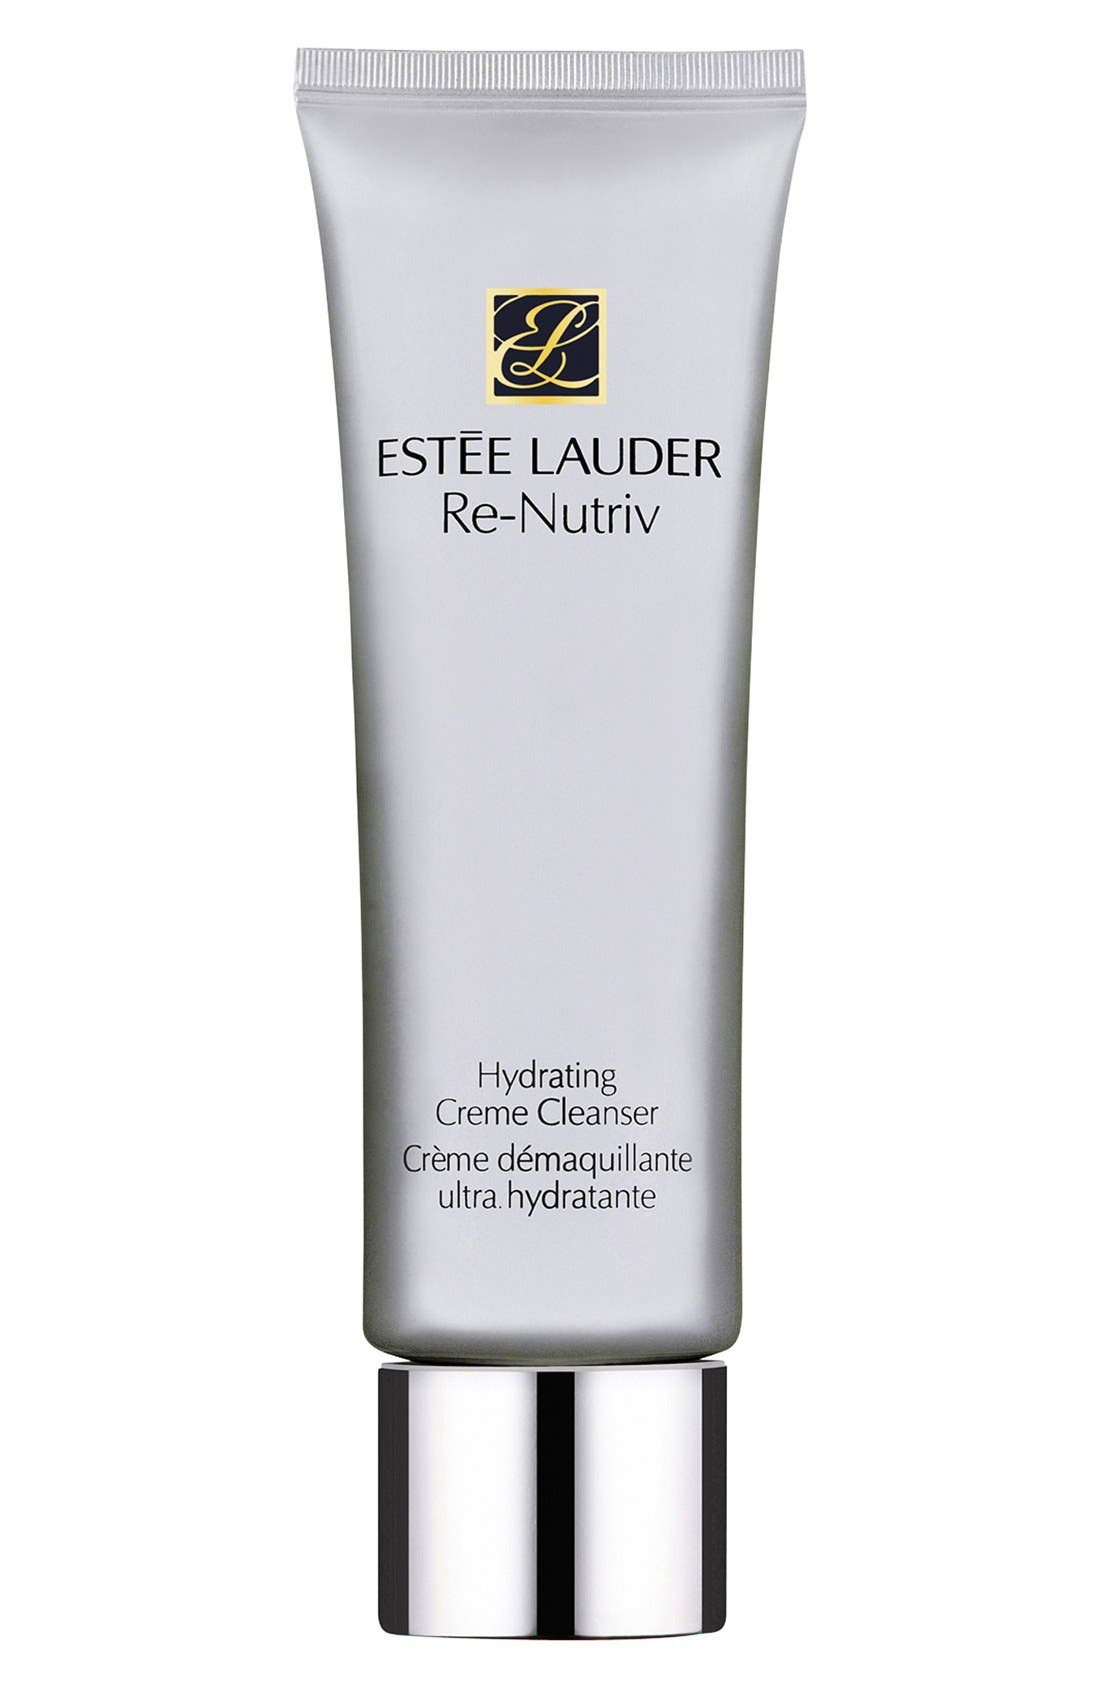 Estée Lauder Re-Nutriv Hydrating Creme Cleanser